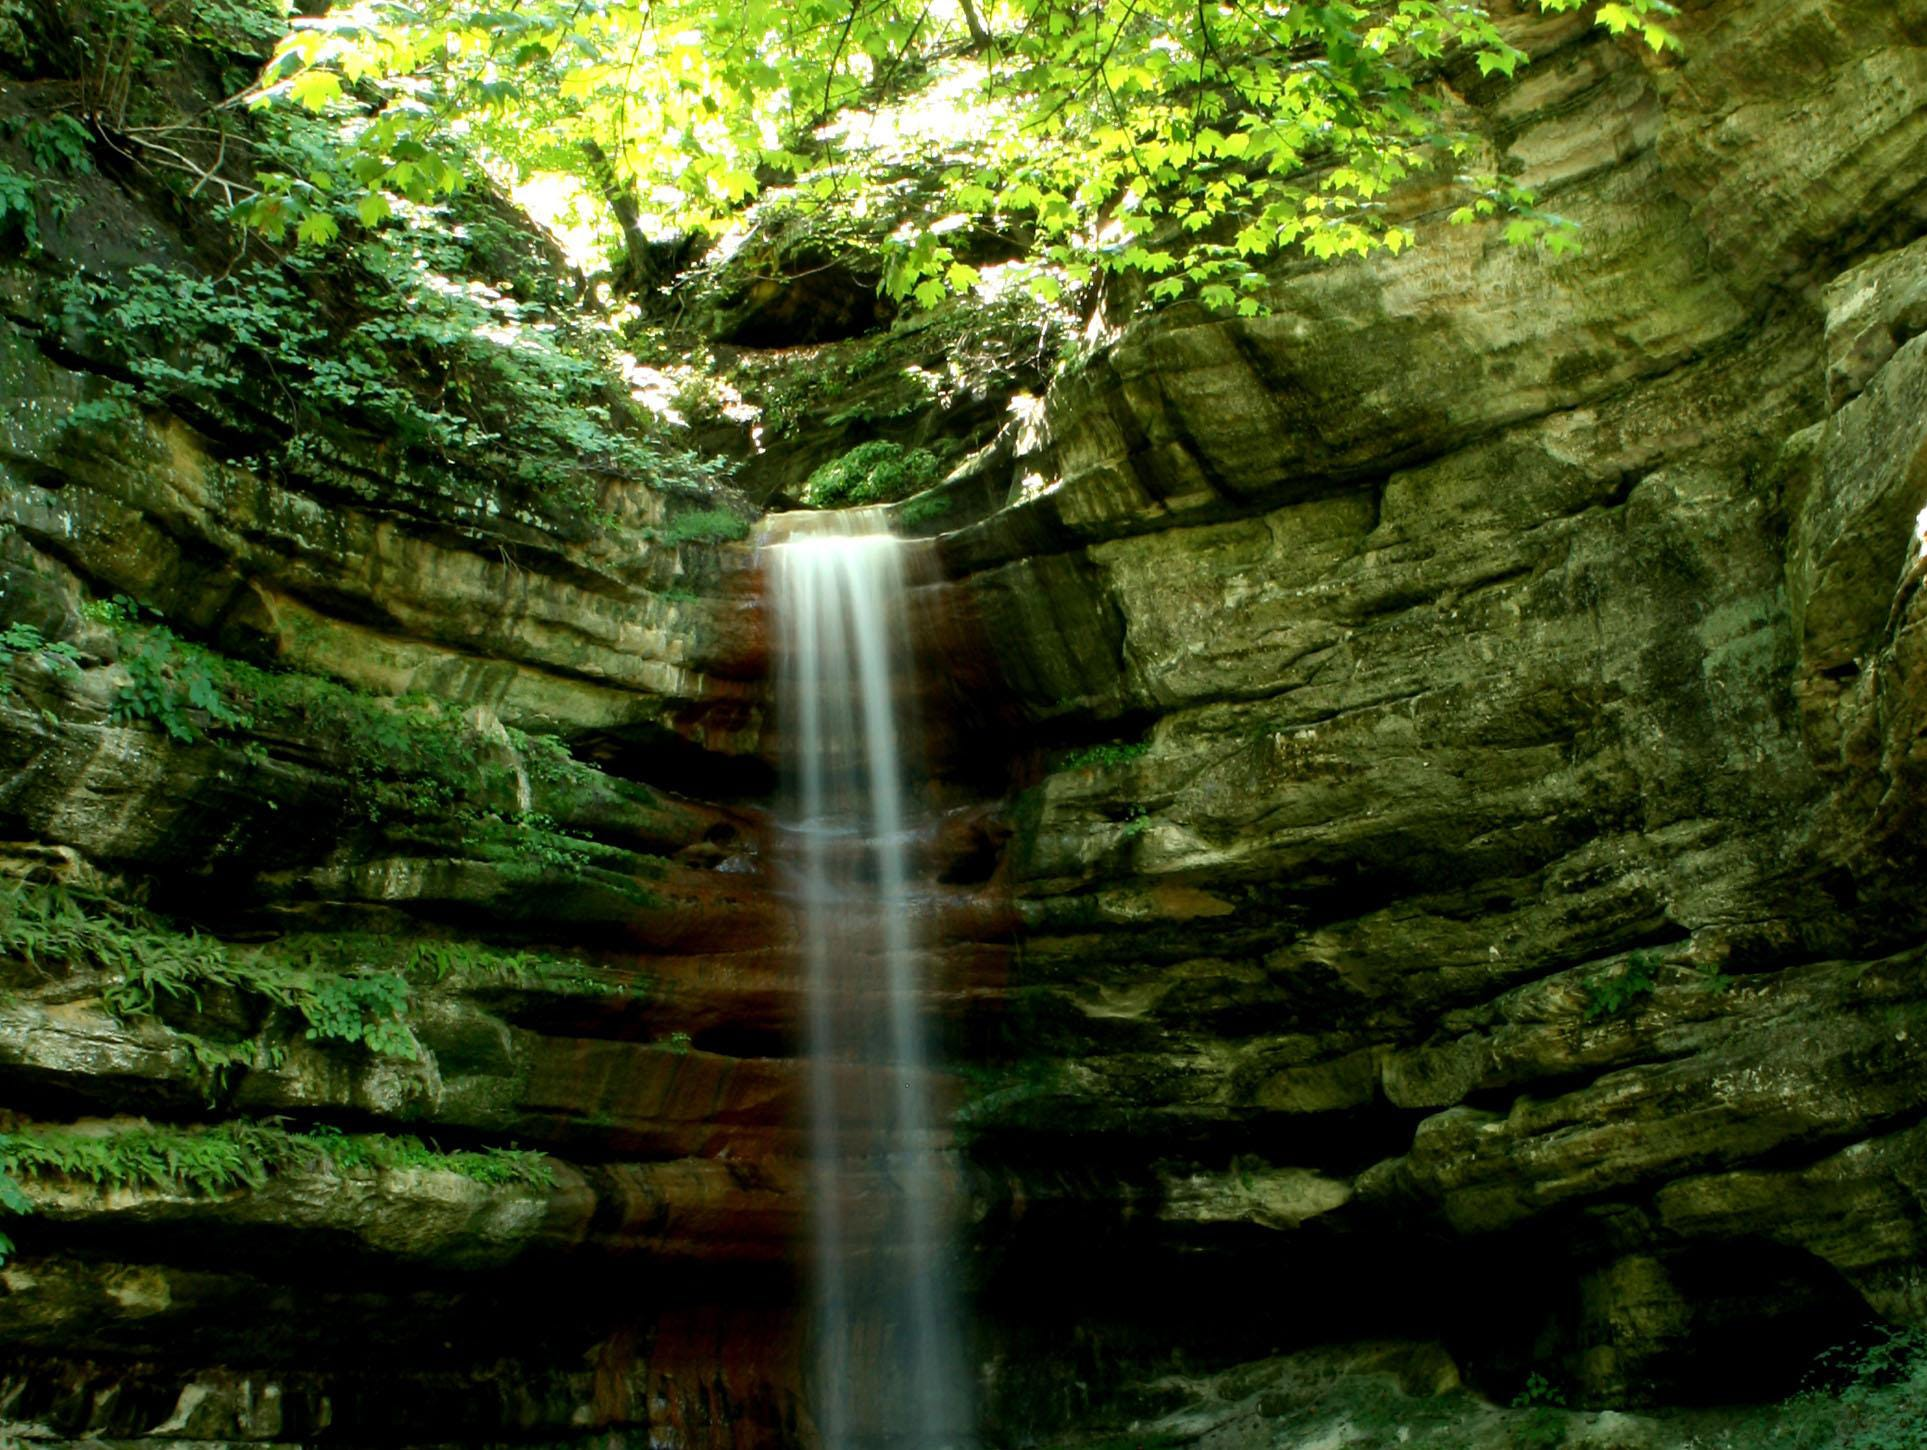 Starved Rock State Park is home to 14 waterfalls in 18 canyons.